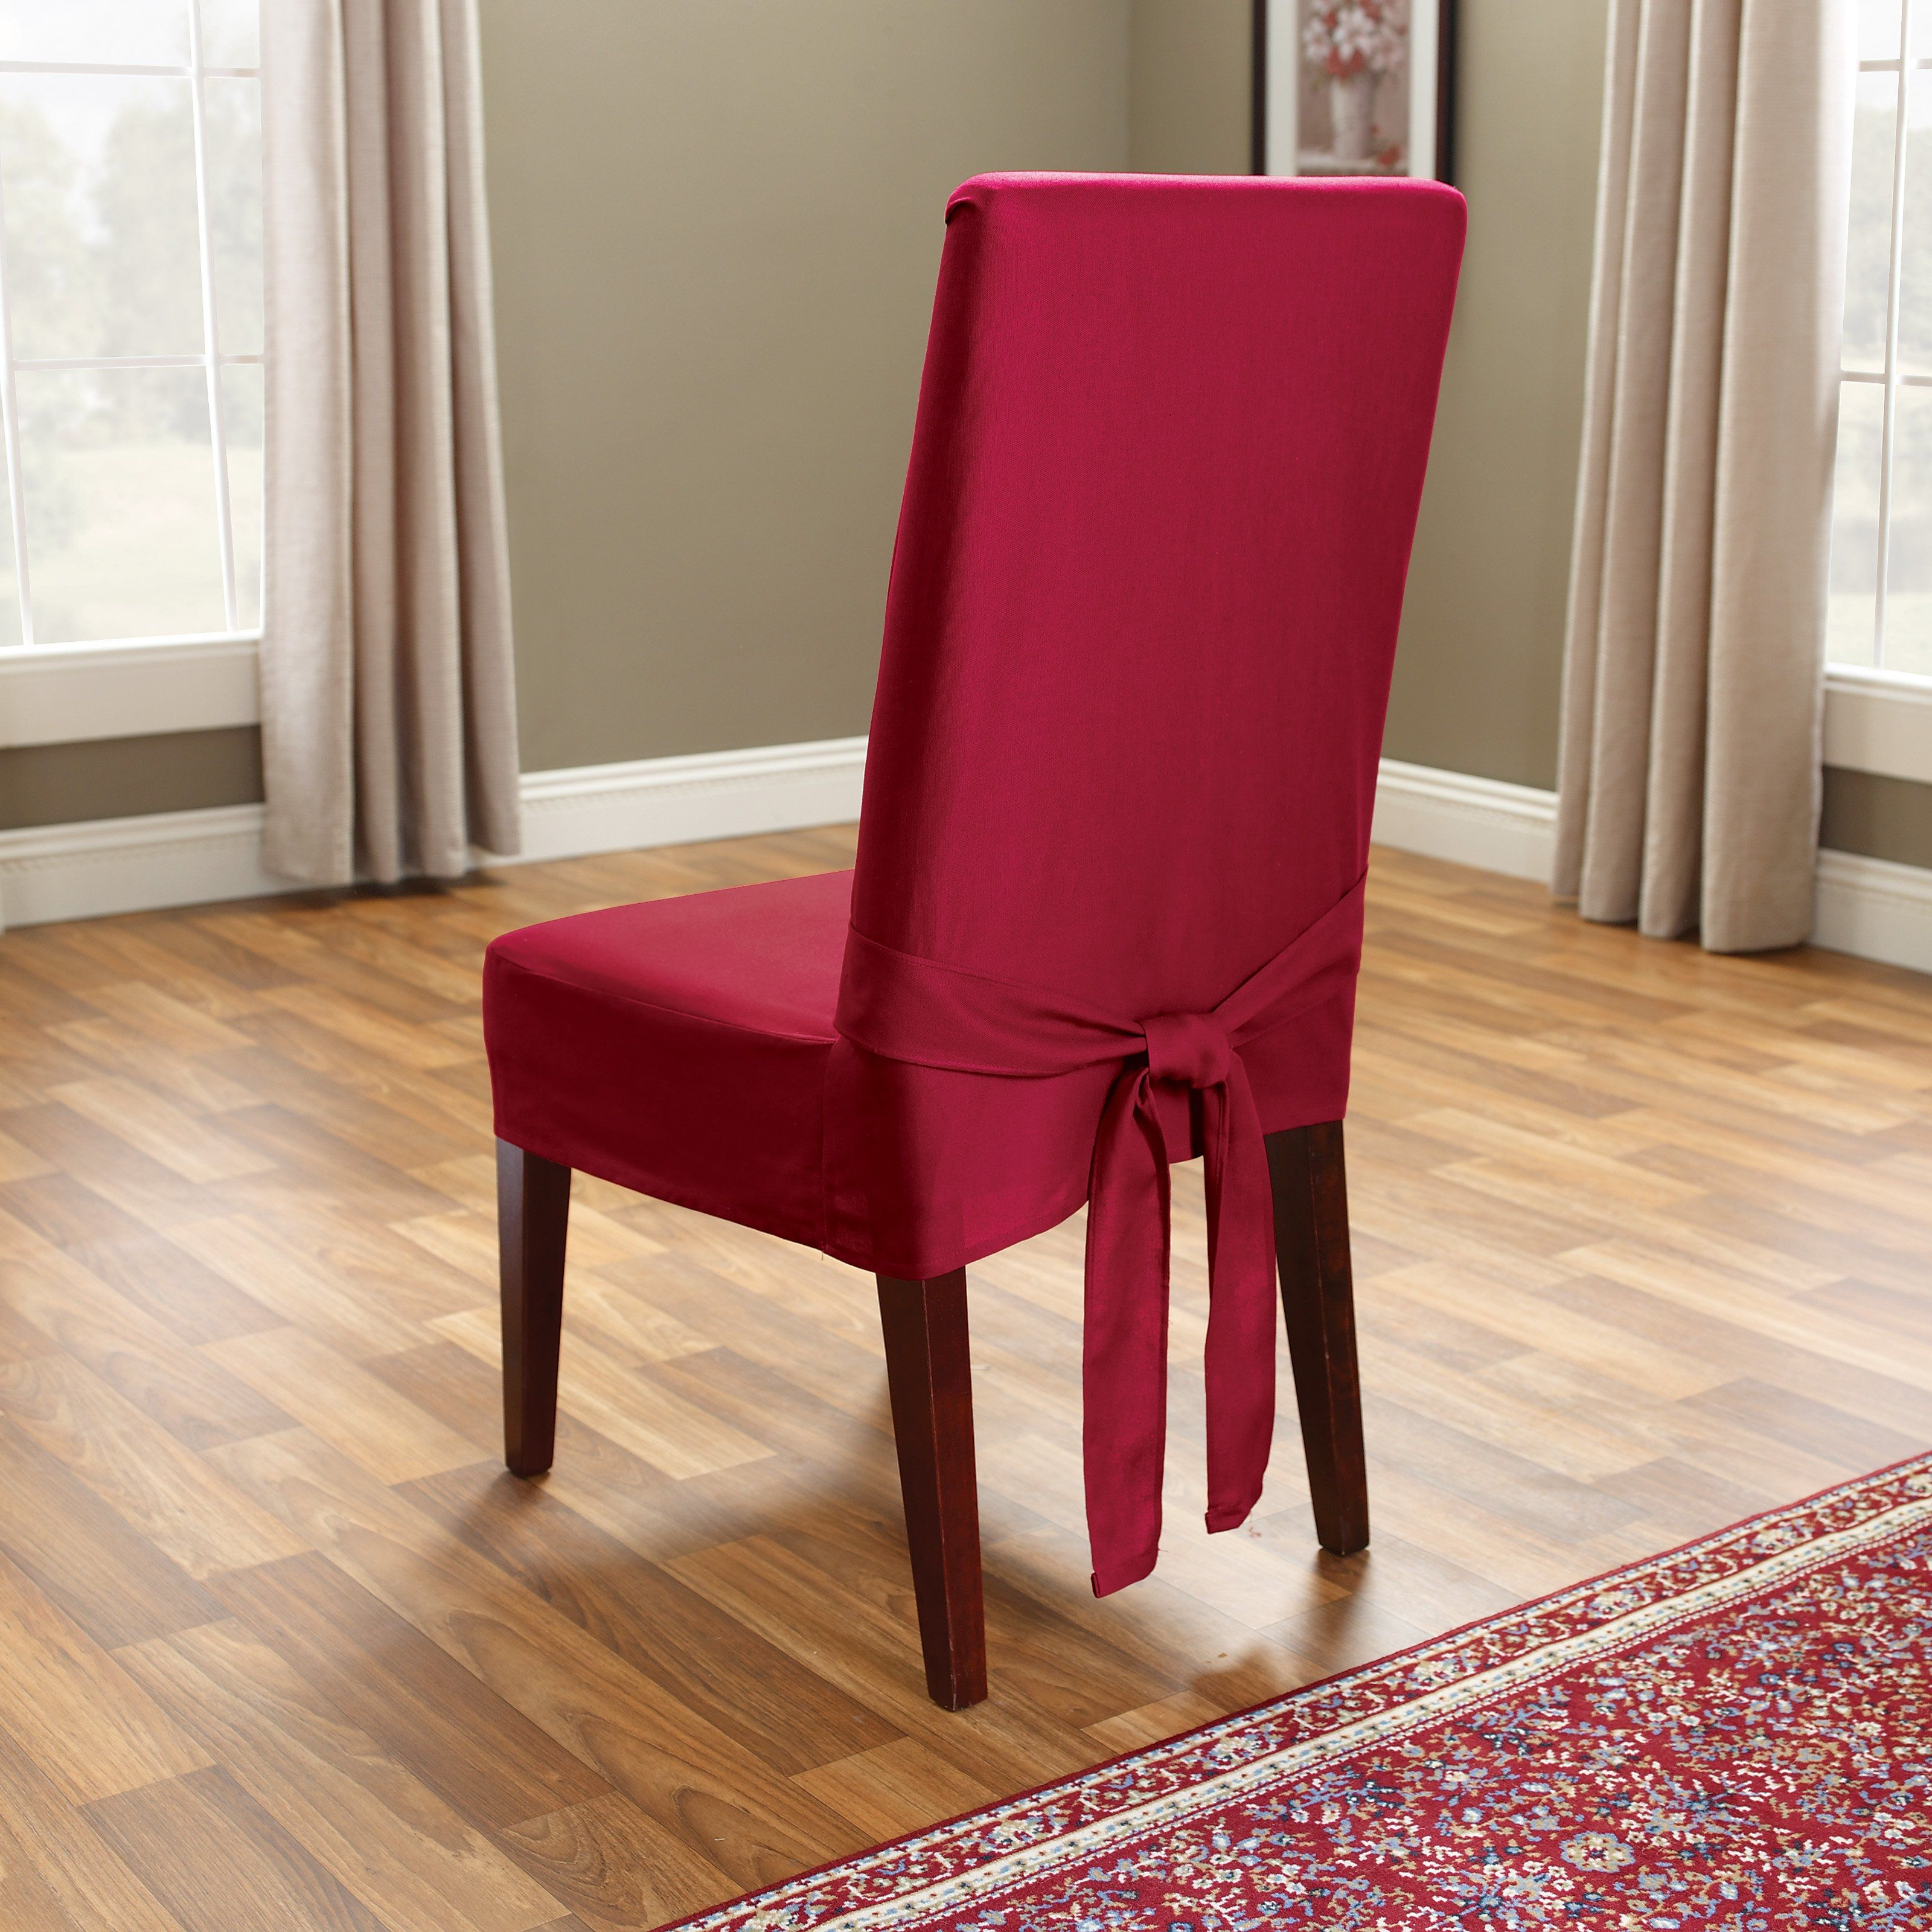 Dining Room Chair Seat Cover Pattern